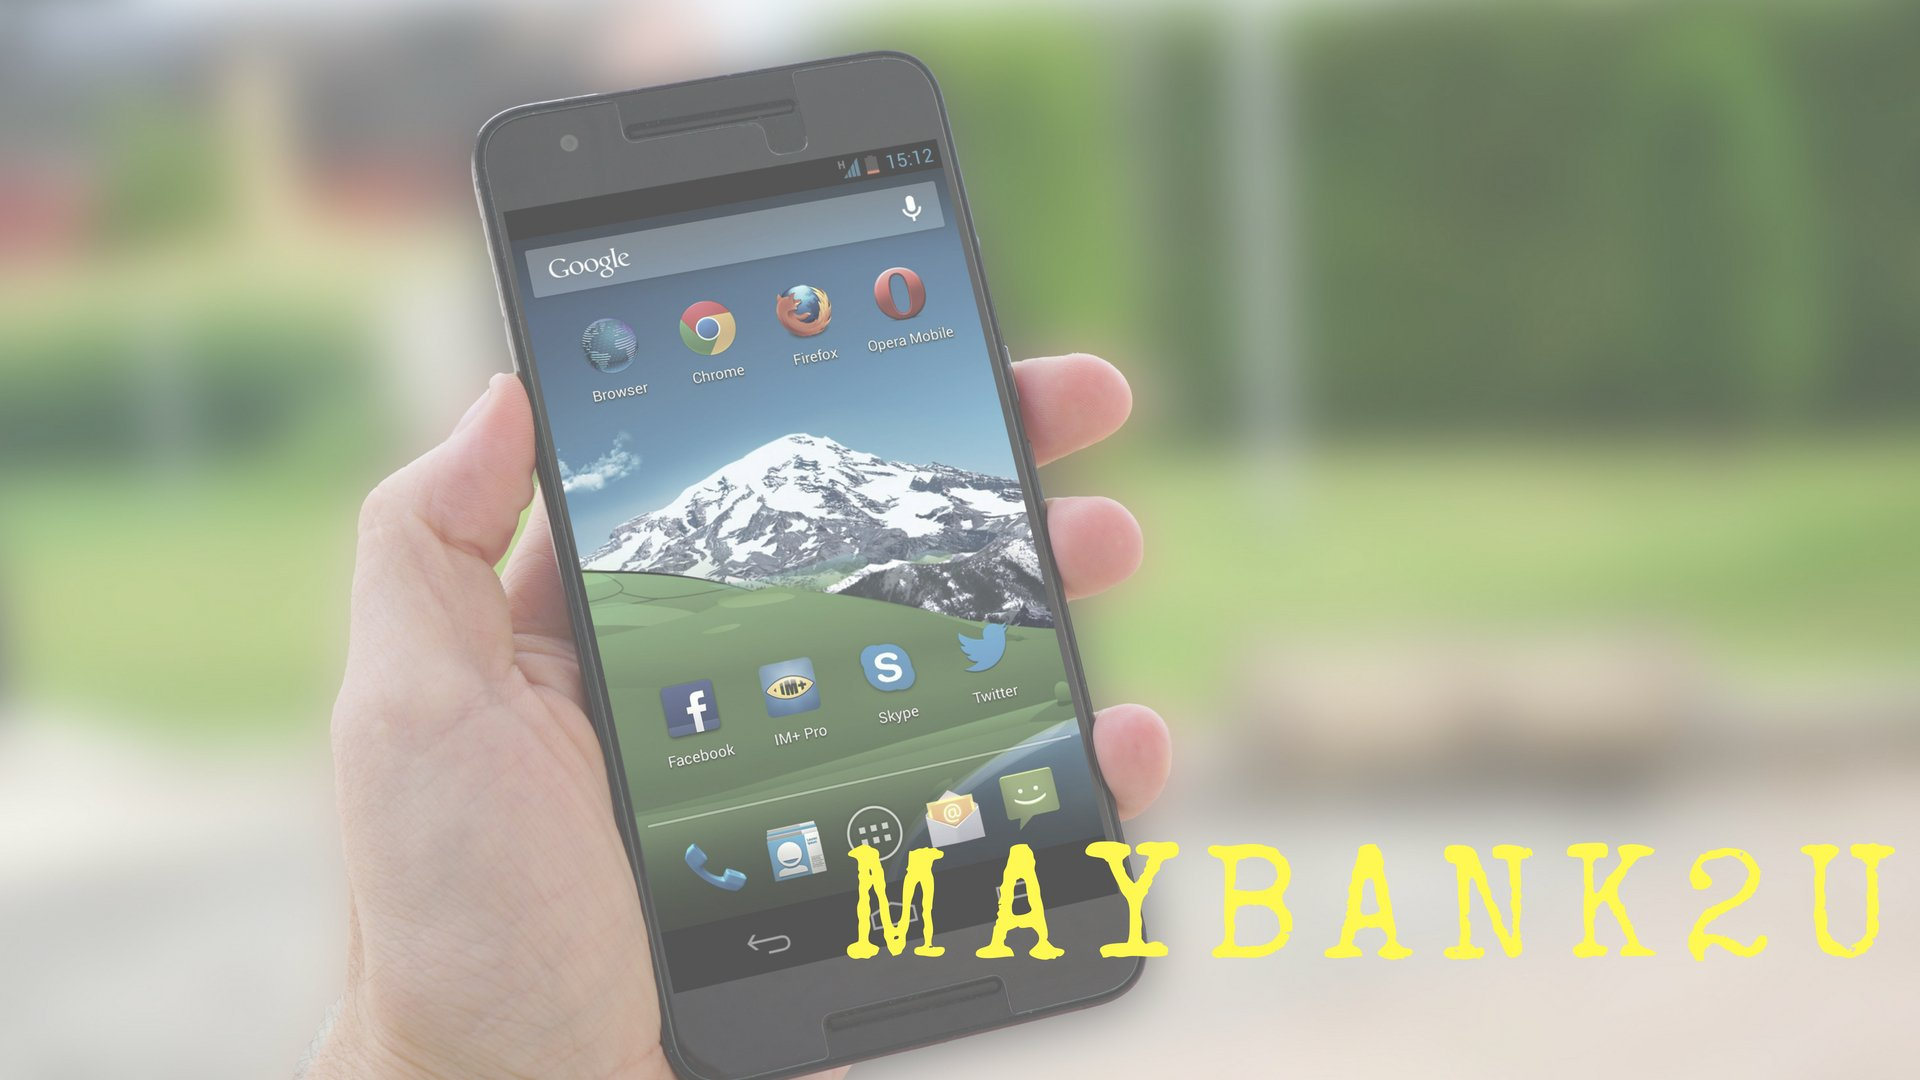 Introducing …The Brand New Maybank2u Mobile App